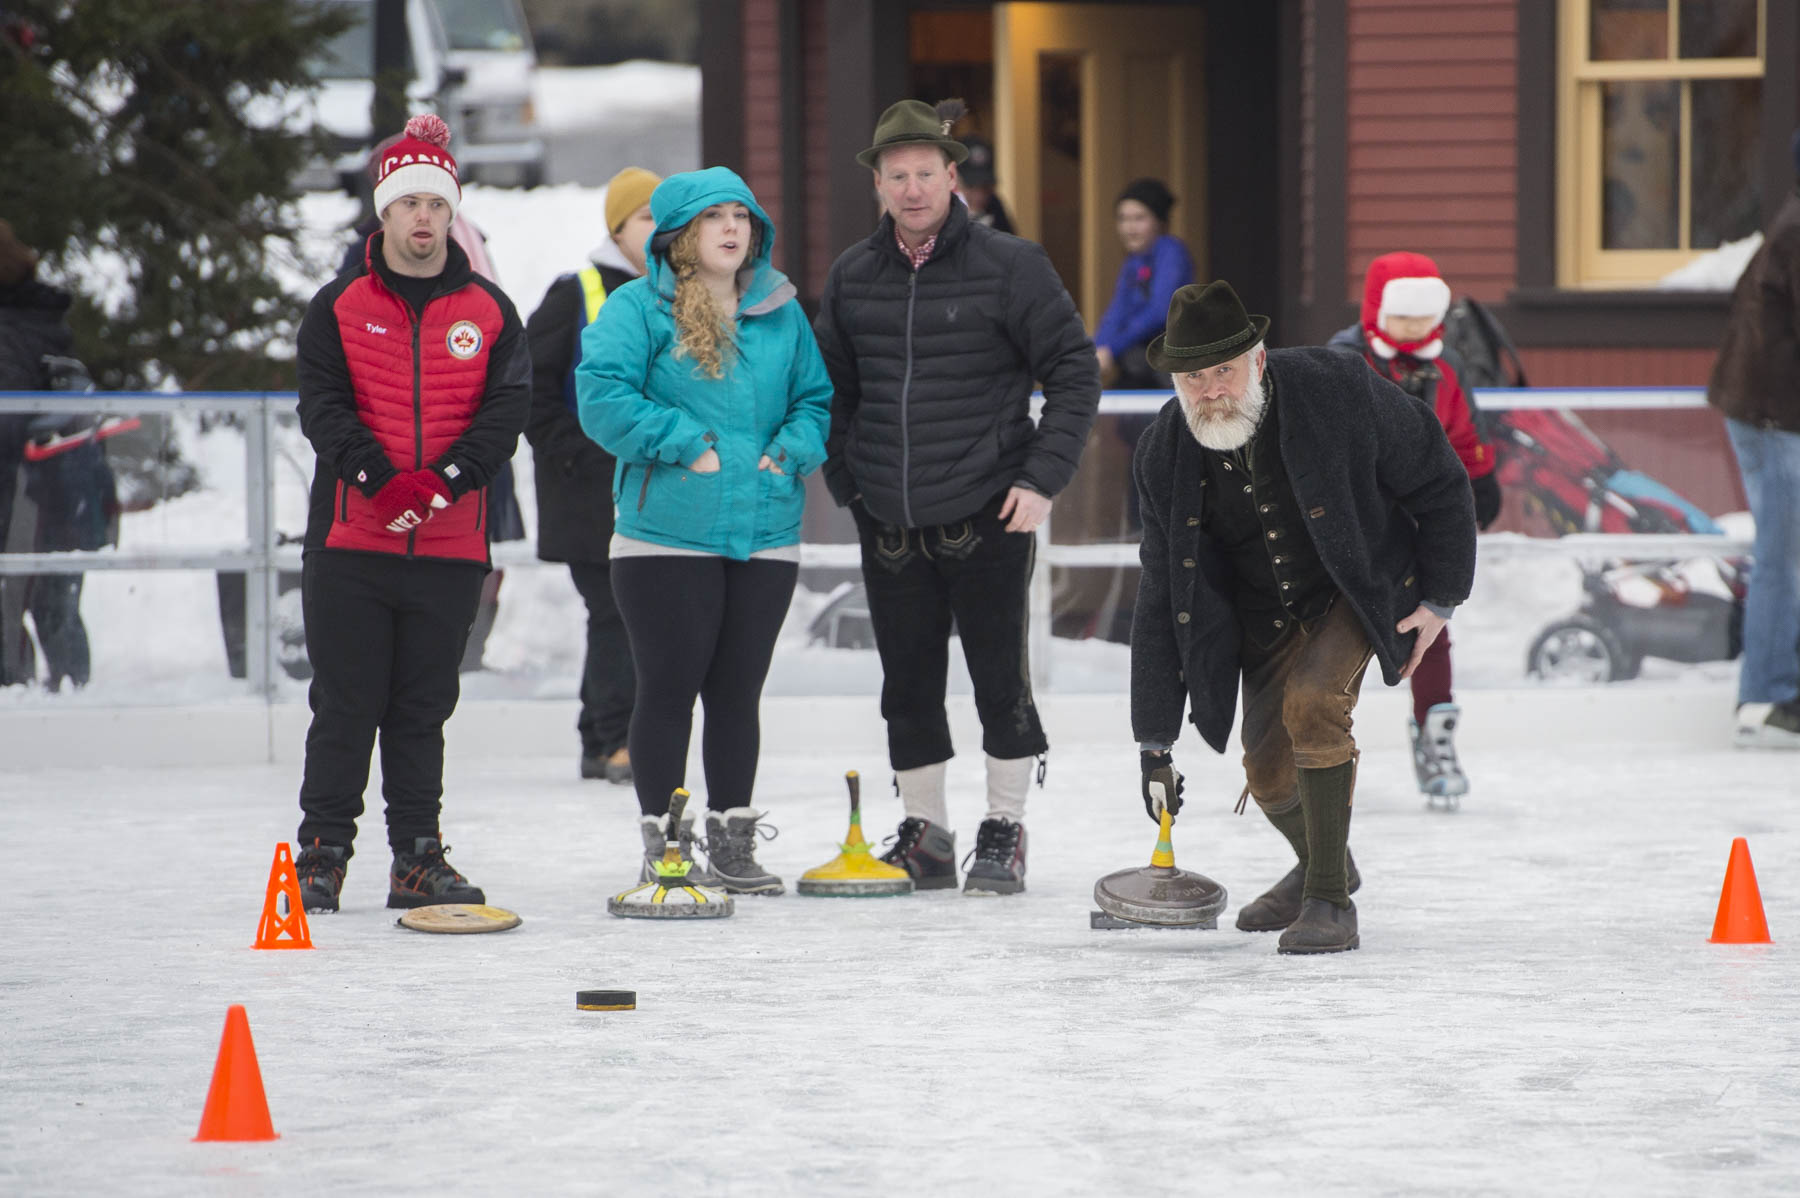 Volunteers and athletes demonstrated the ins and outs of curling, an historic sport beloved by Canadians.